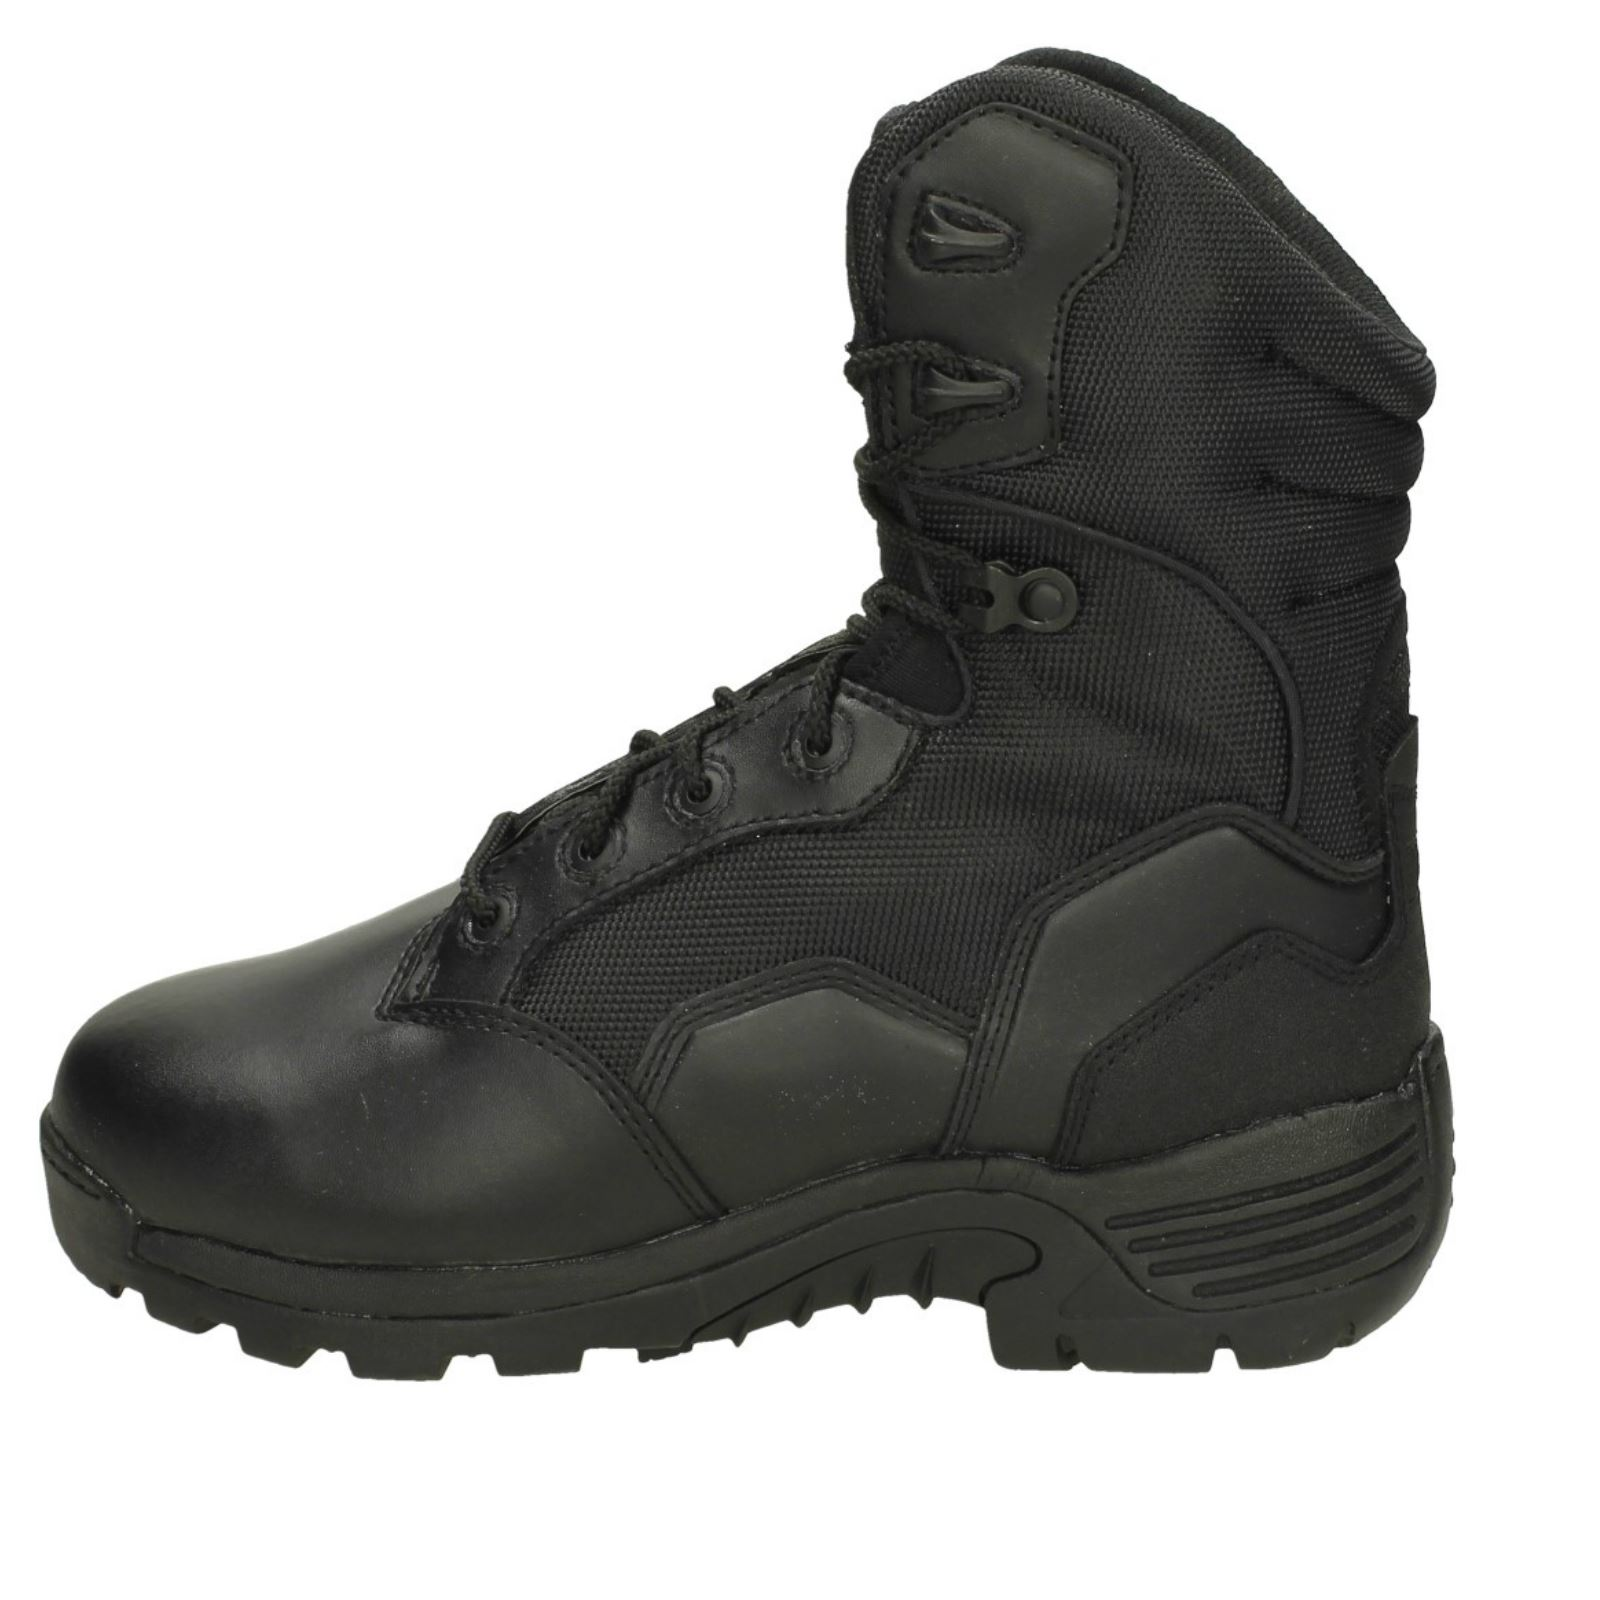 Mens-Magnum-Waterproof-Insulated-Boots-039-Strike-Force-II-039 thumbnail 3